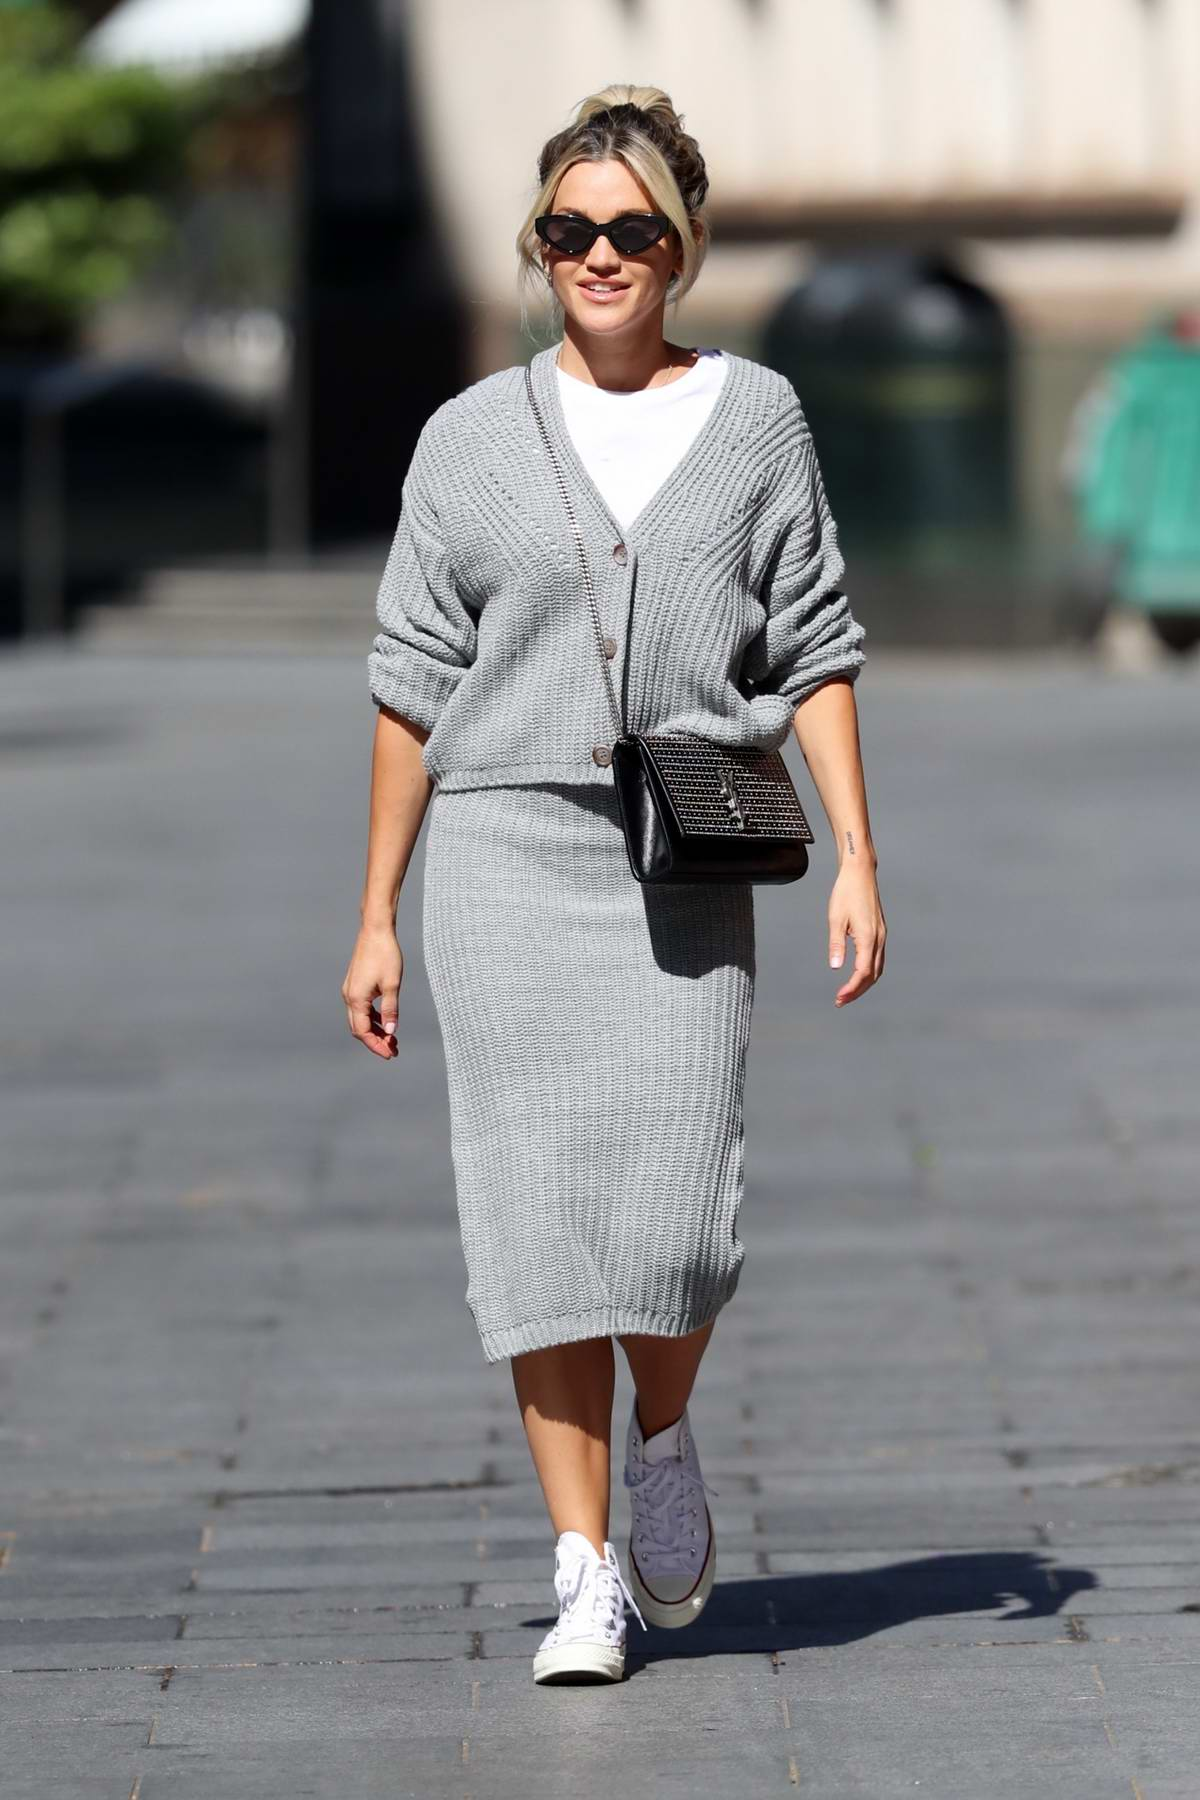 Ashley Roberts wears a grey knitted top and skirt while leaving the Heart Radio Studios in London, UK